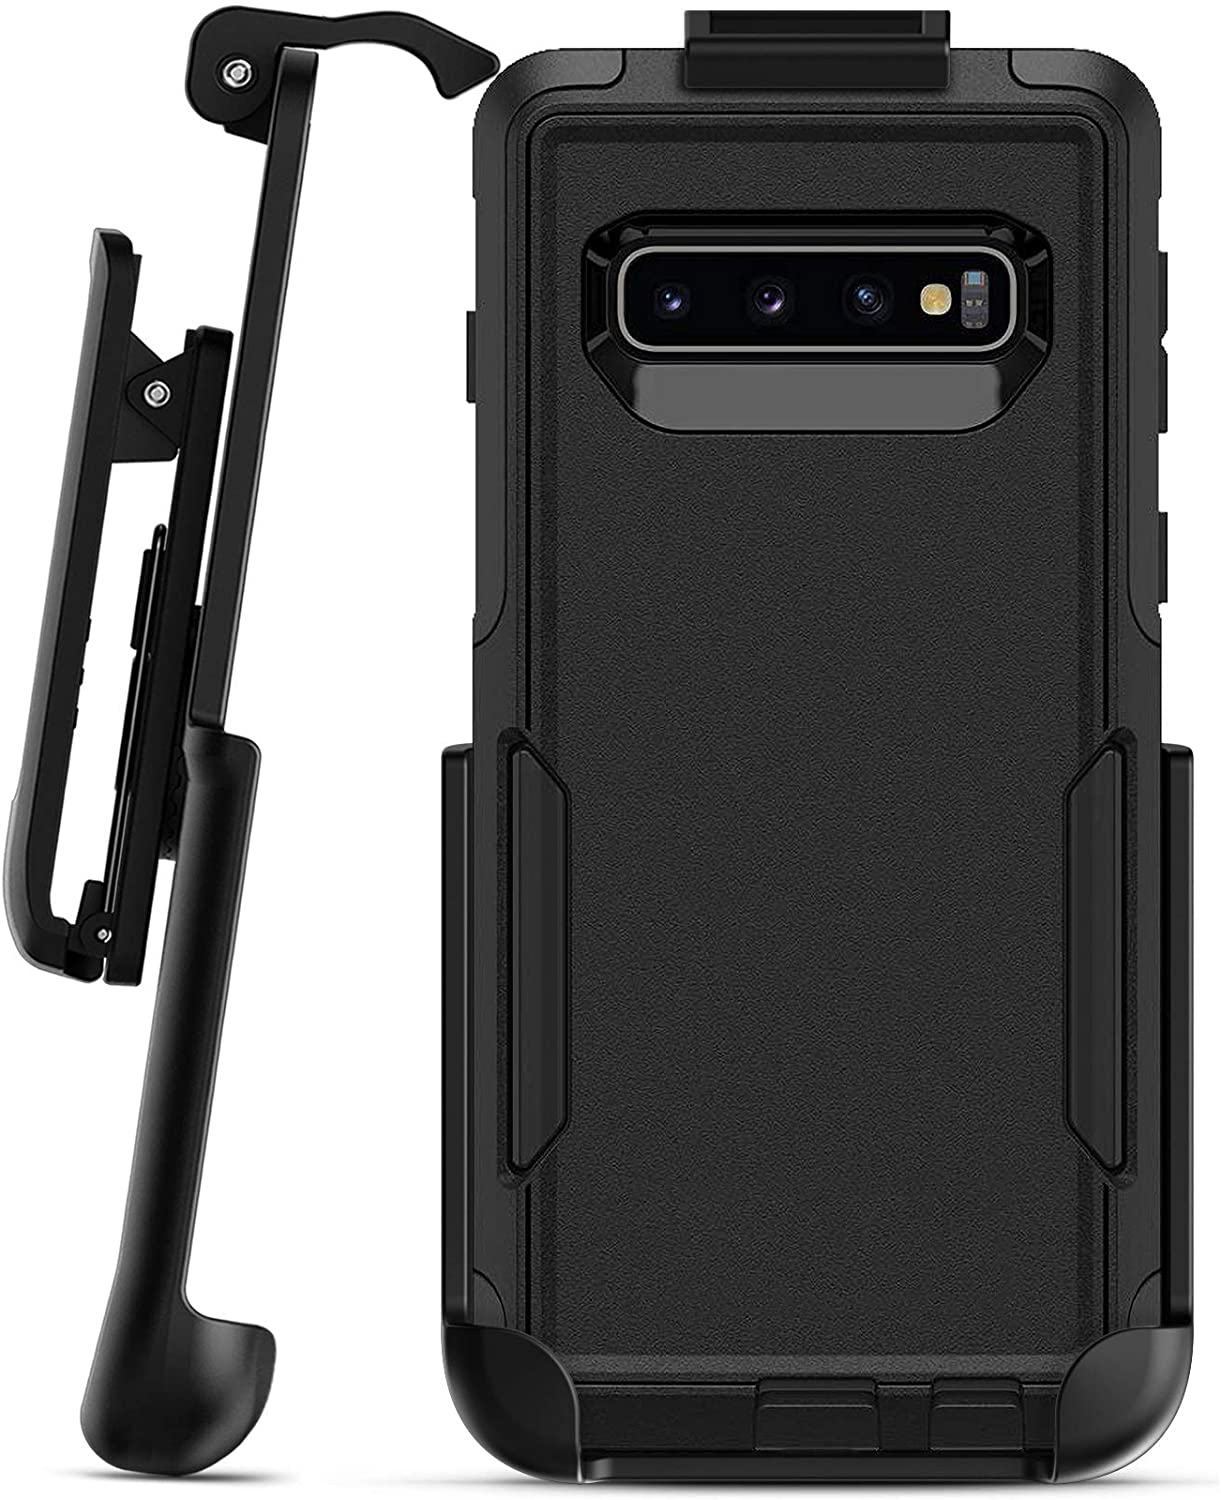 Encased Belt Clip Holster - Compatible with Otterbox Commuter Case - Samsung Galaxy S10 (case is Not Included)